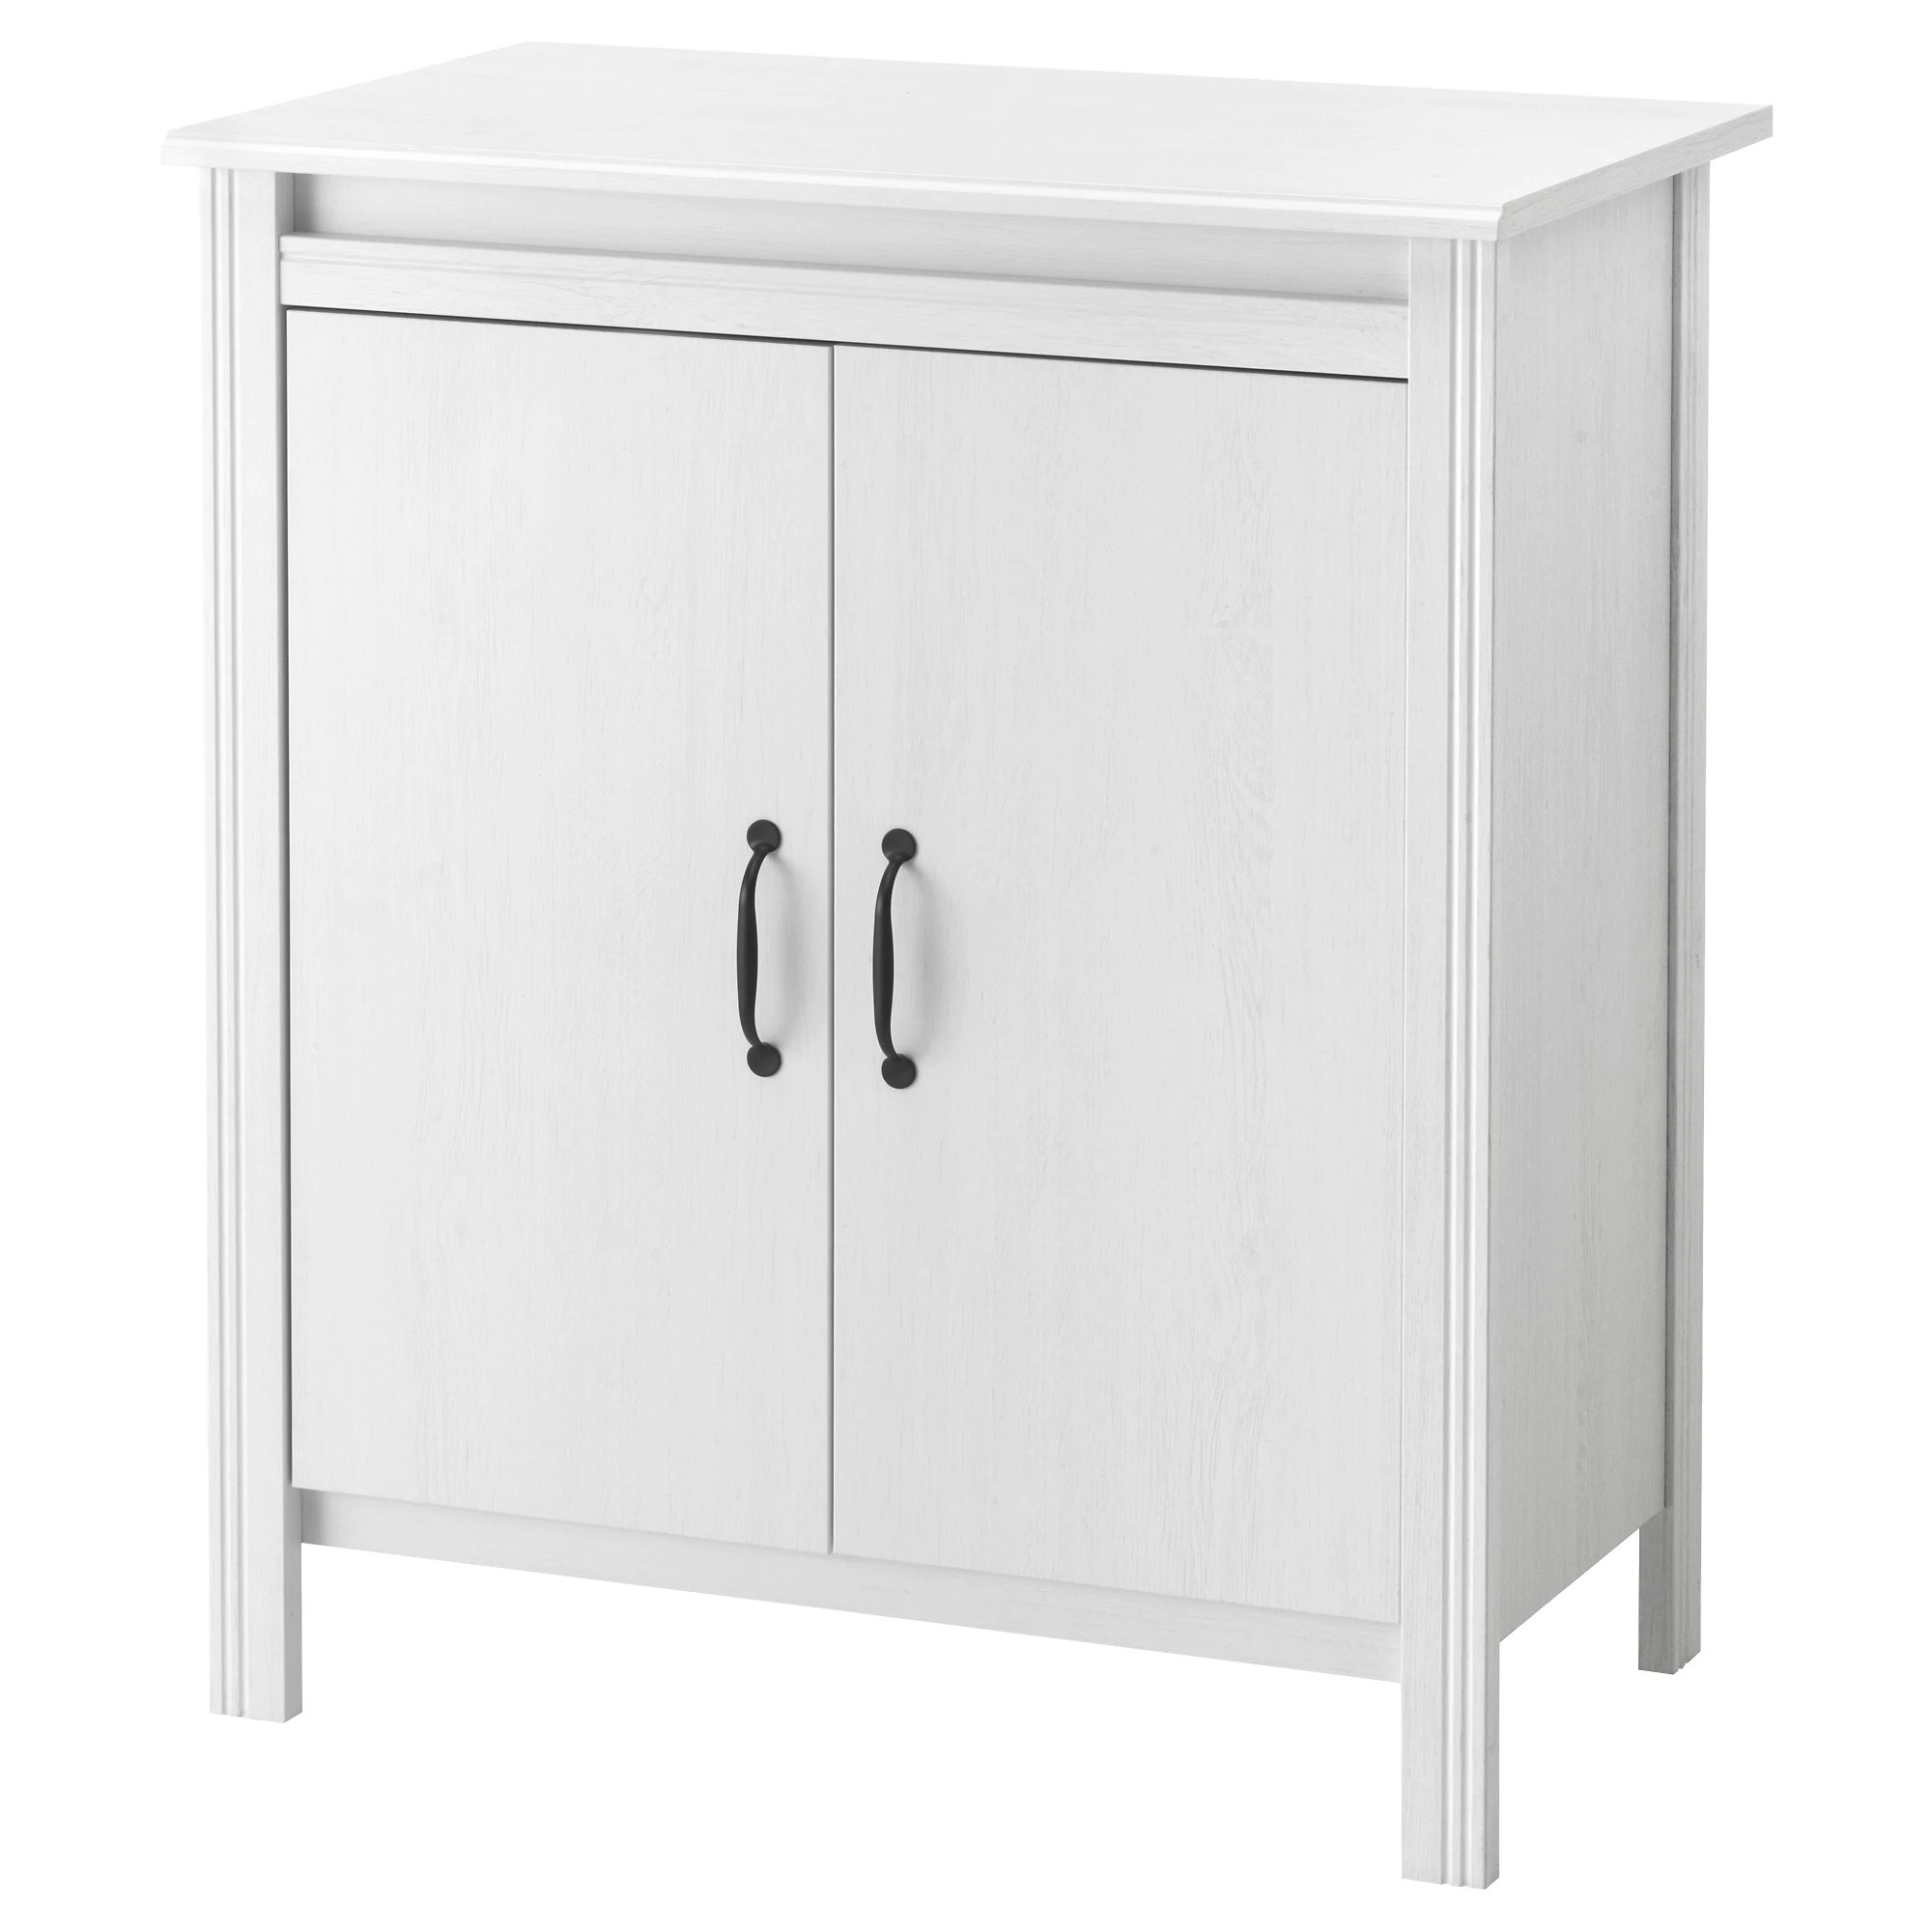 Ikea Storage Cabinets Brusali Cabinet With Doors White